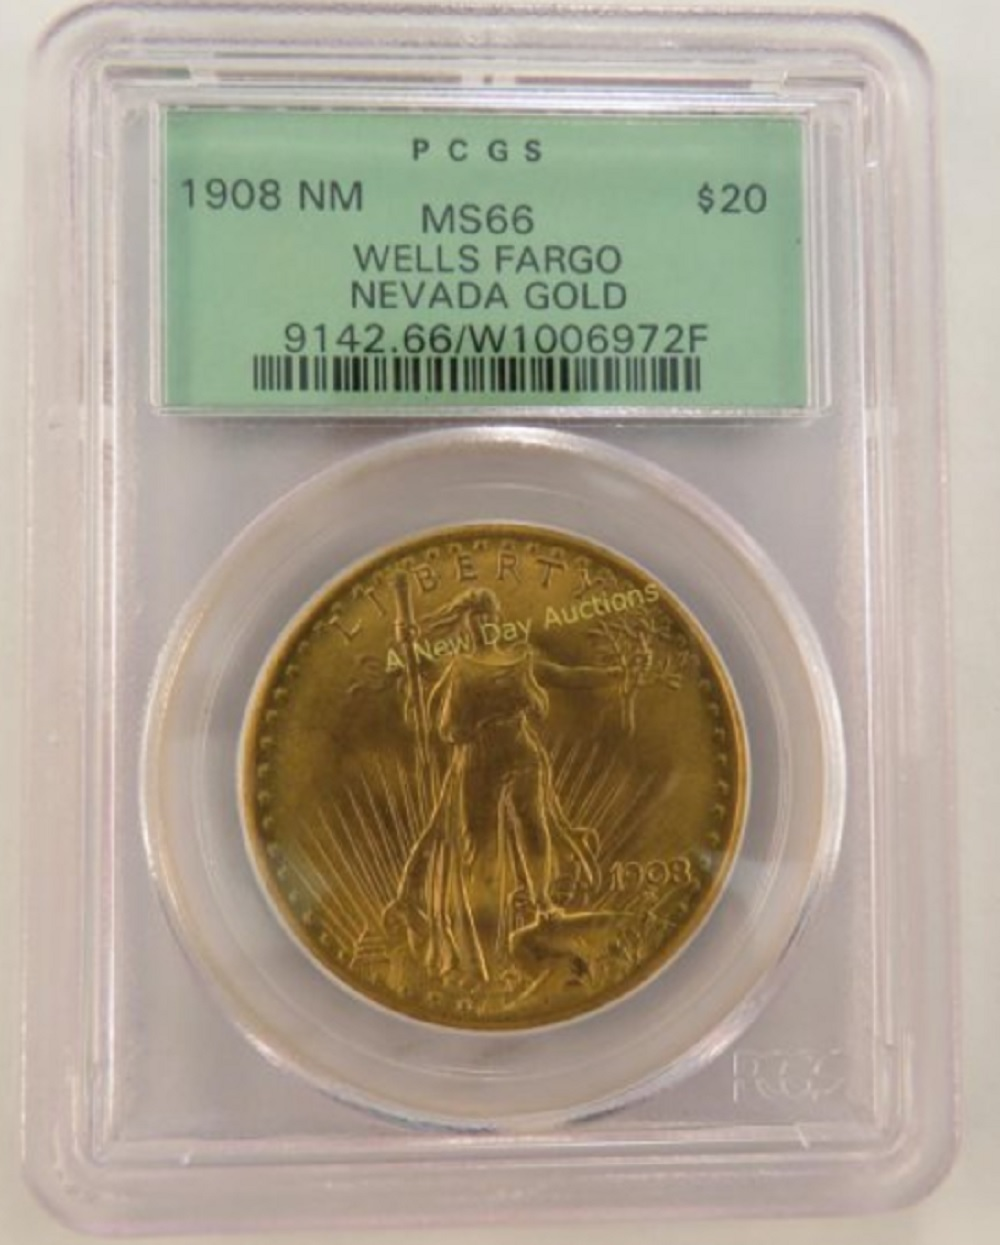 This super gem Wells Fargo 1908 Saint-Gaudens, No Motto double eagle has a story and a moral.